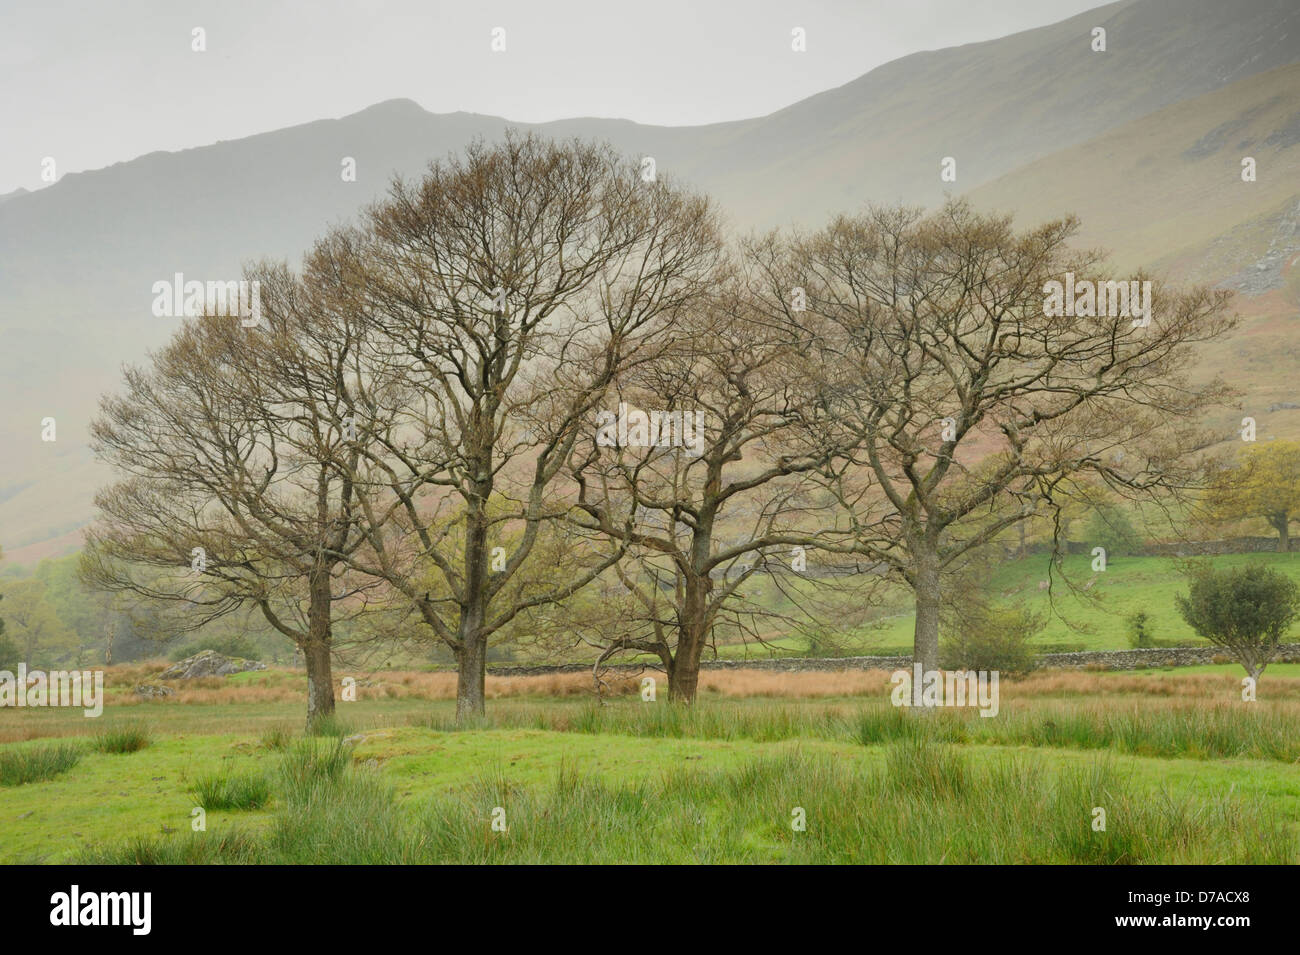 Four trees in bud in Manesty Woods with Black Crag and Derwent Fells behind on a wet and misty day - Stock Image